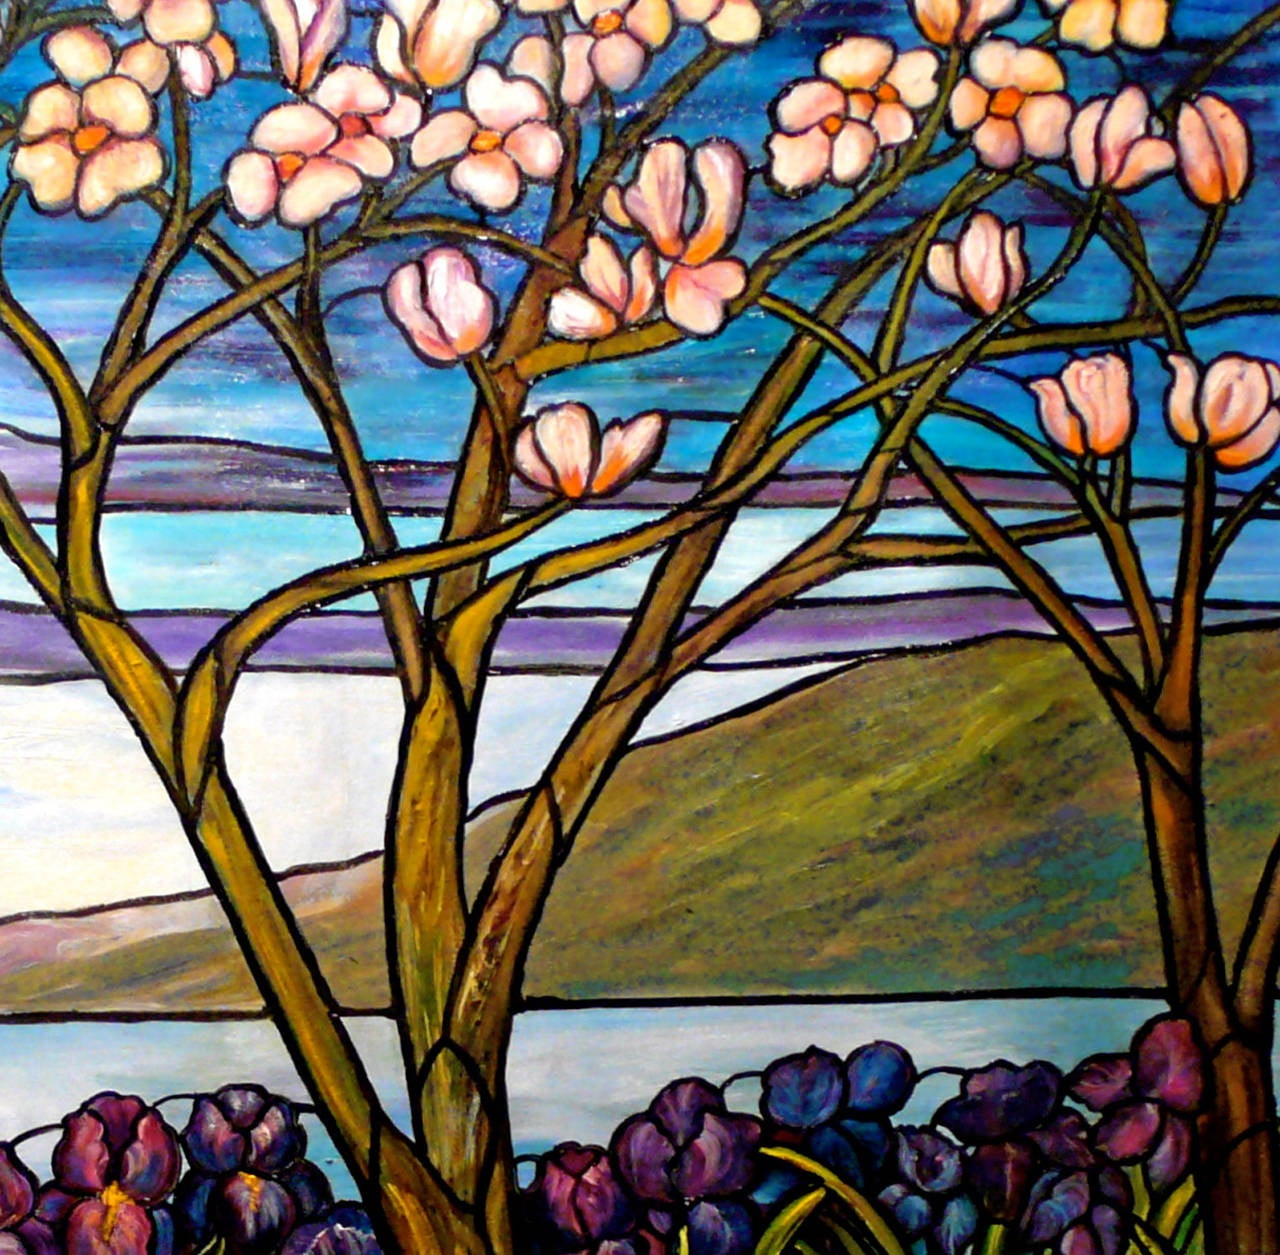 Garden Landscape with Water Views - Painting by Kristina Nemethy